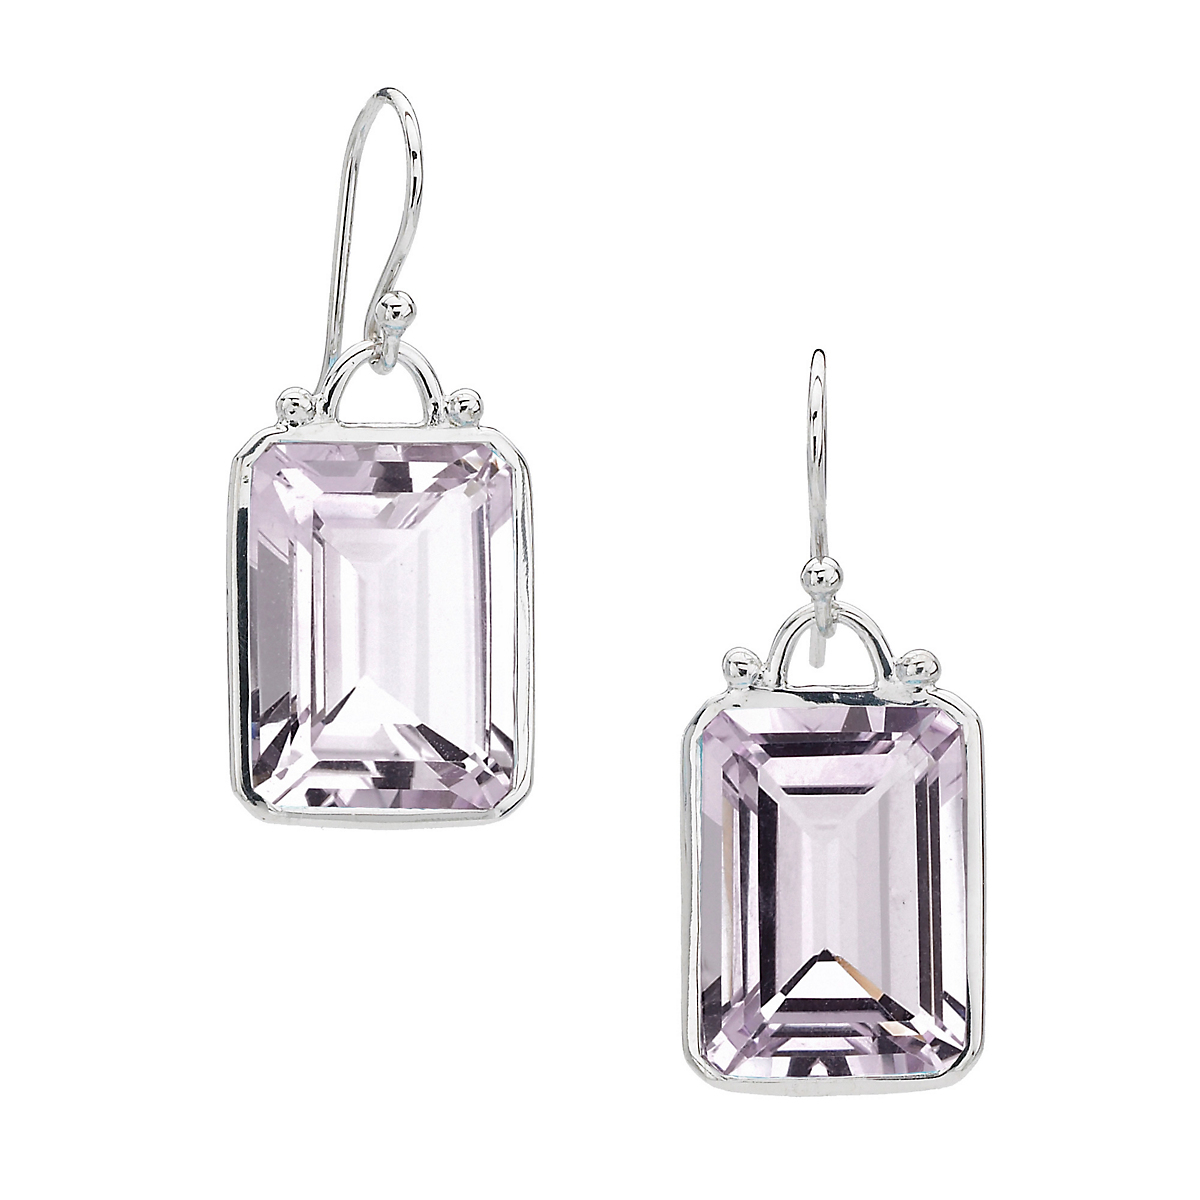 Elizabeth Showers Emerald Cut Rose Amethyst Drop Earrings